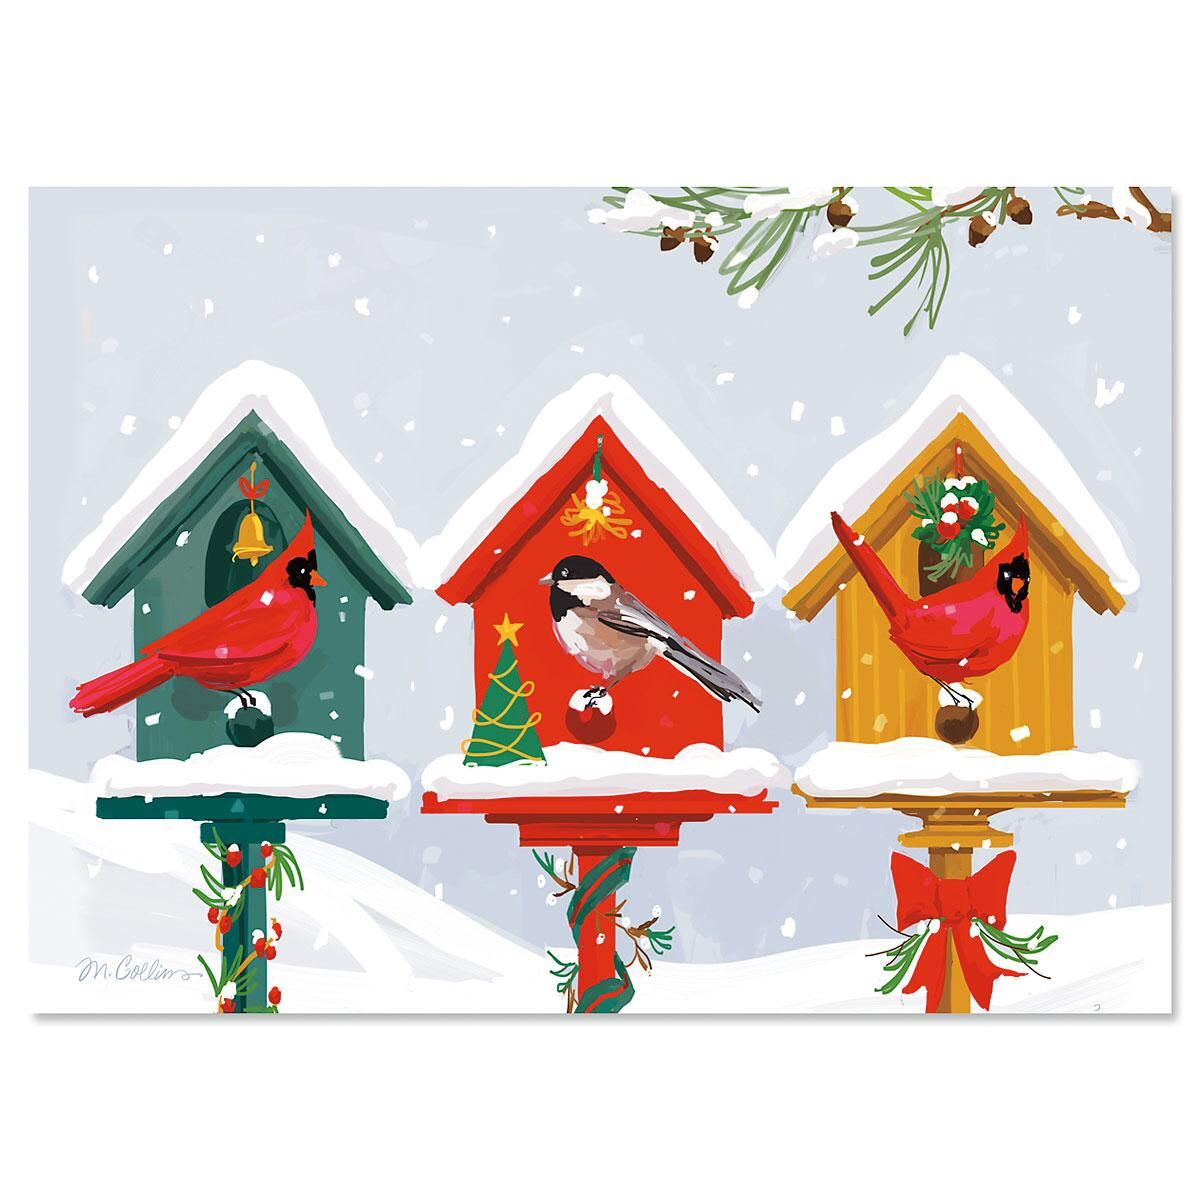 Holiday Birdhouse Nonpersonalized Christmas Cards - Set of 72